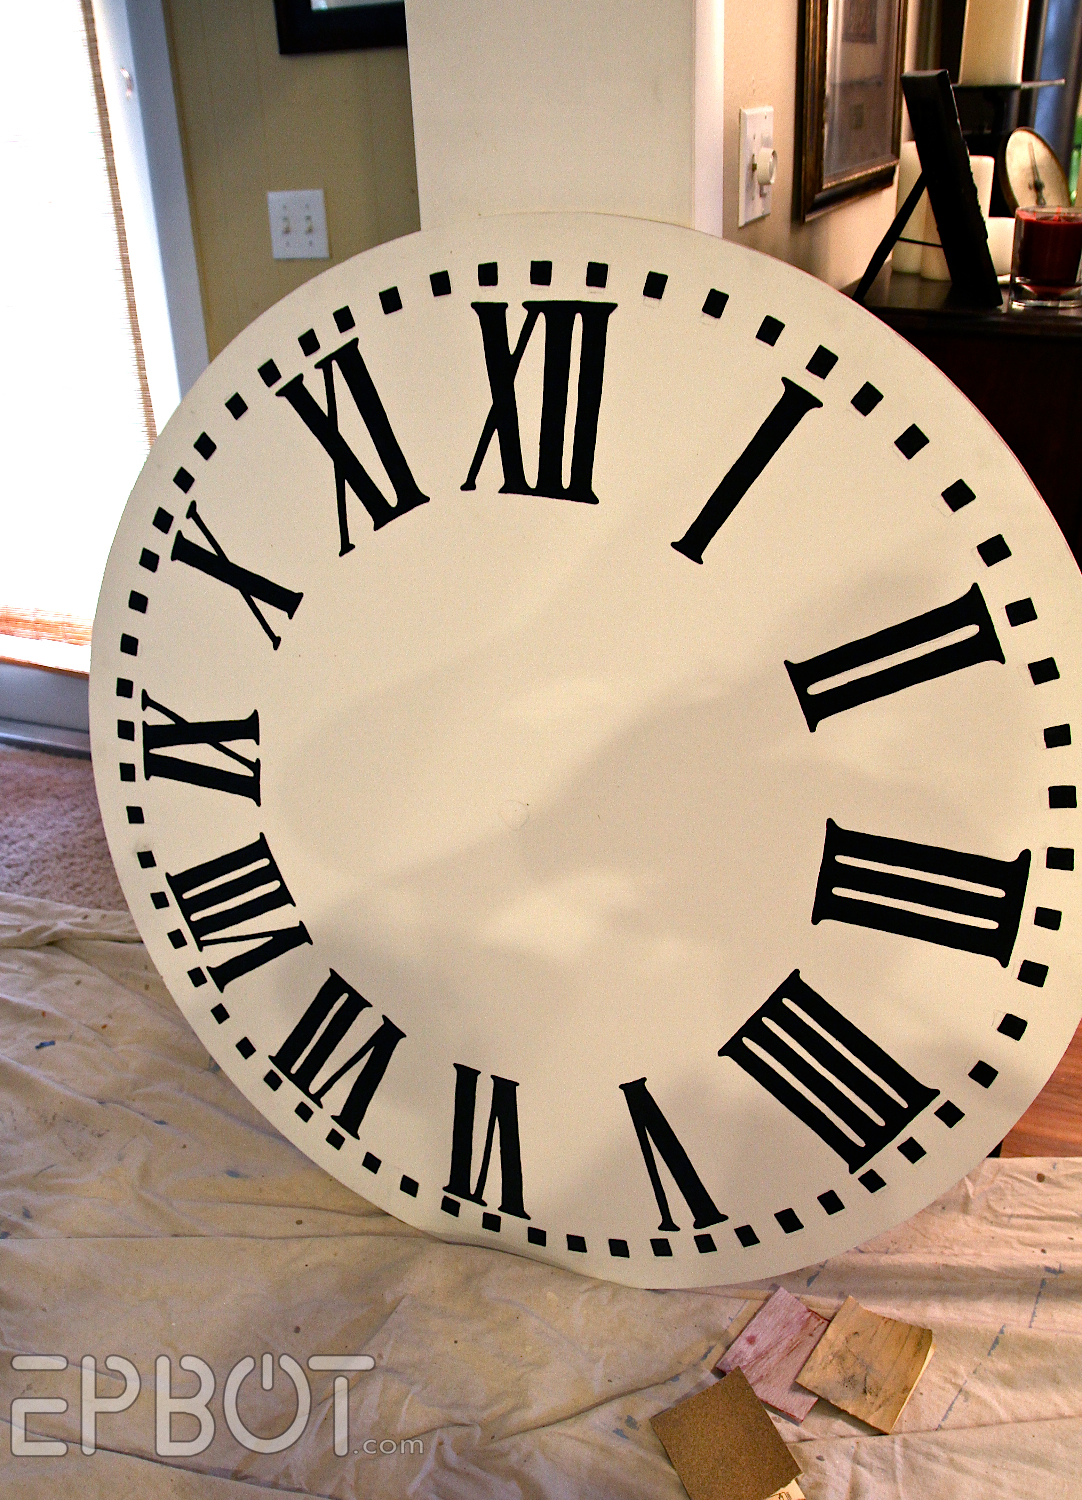 Epbot diy giant tower wall clock amipublicfo Gallery